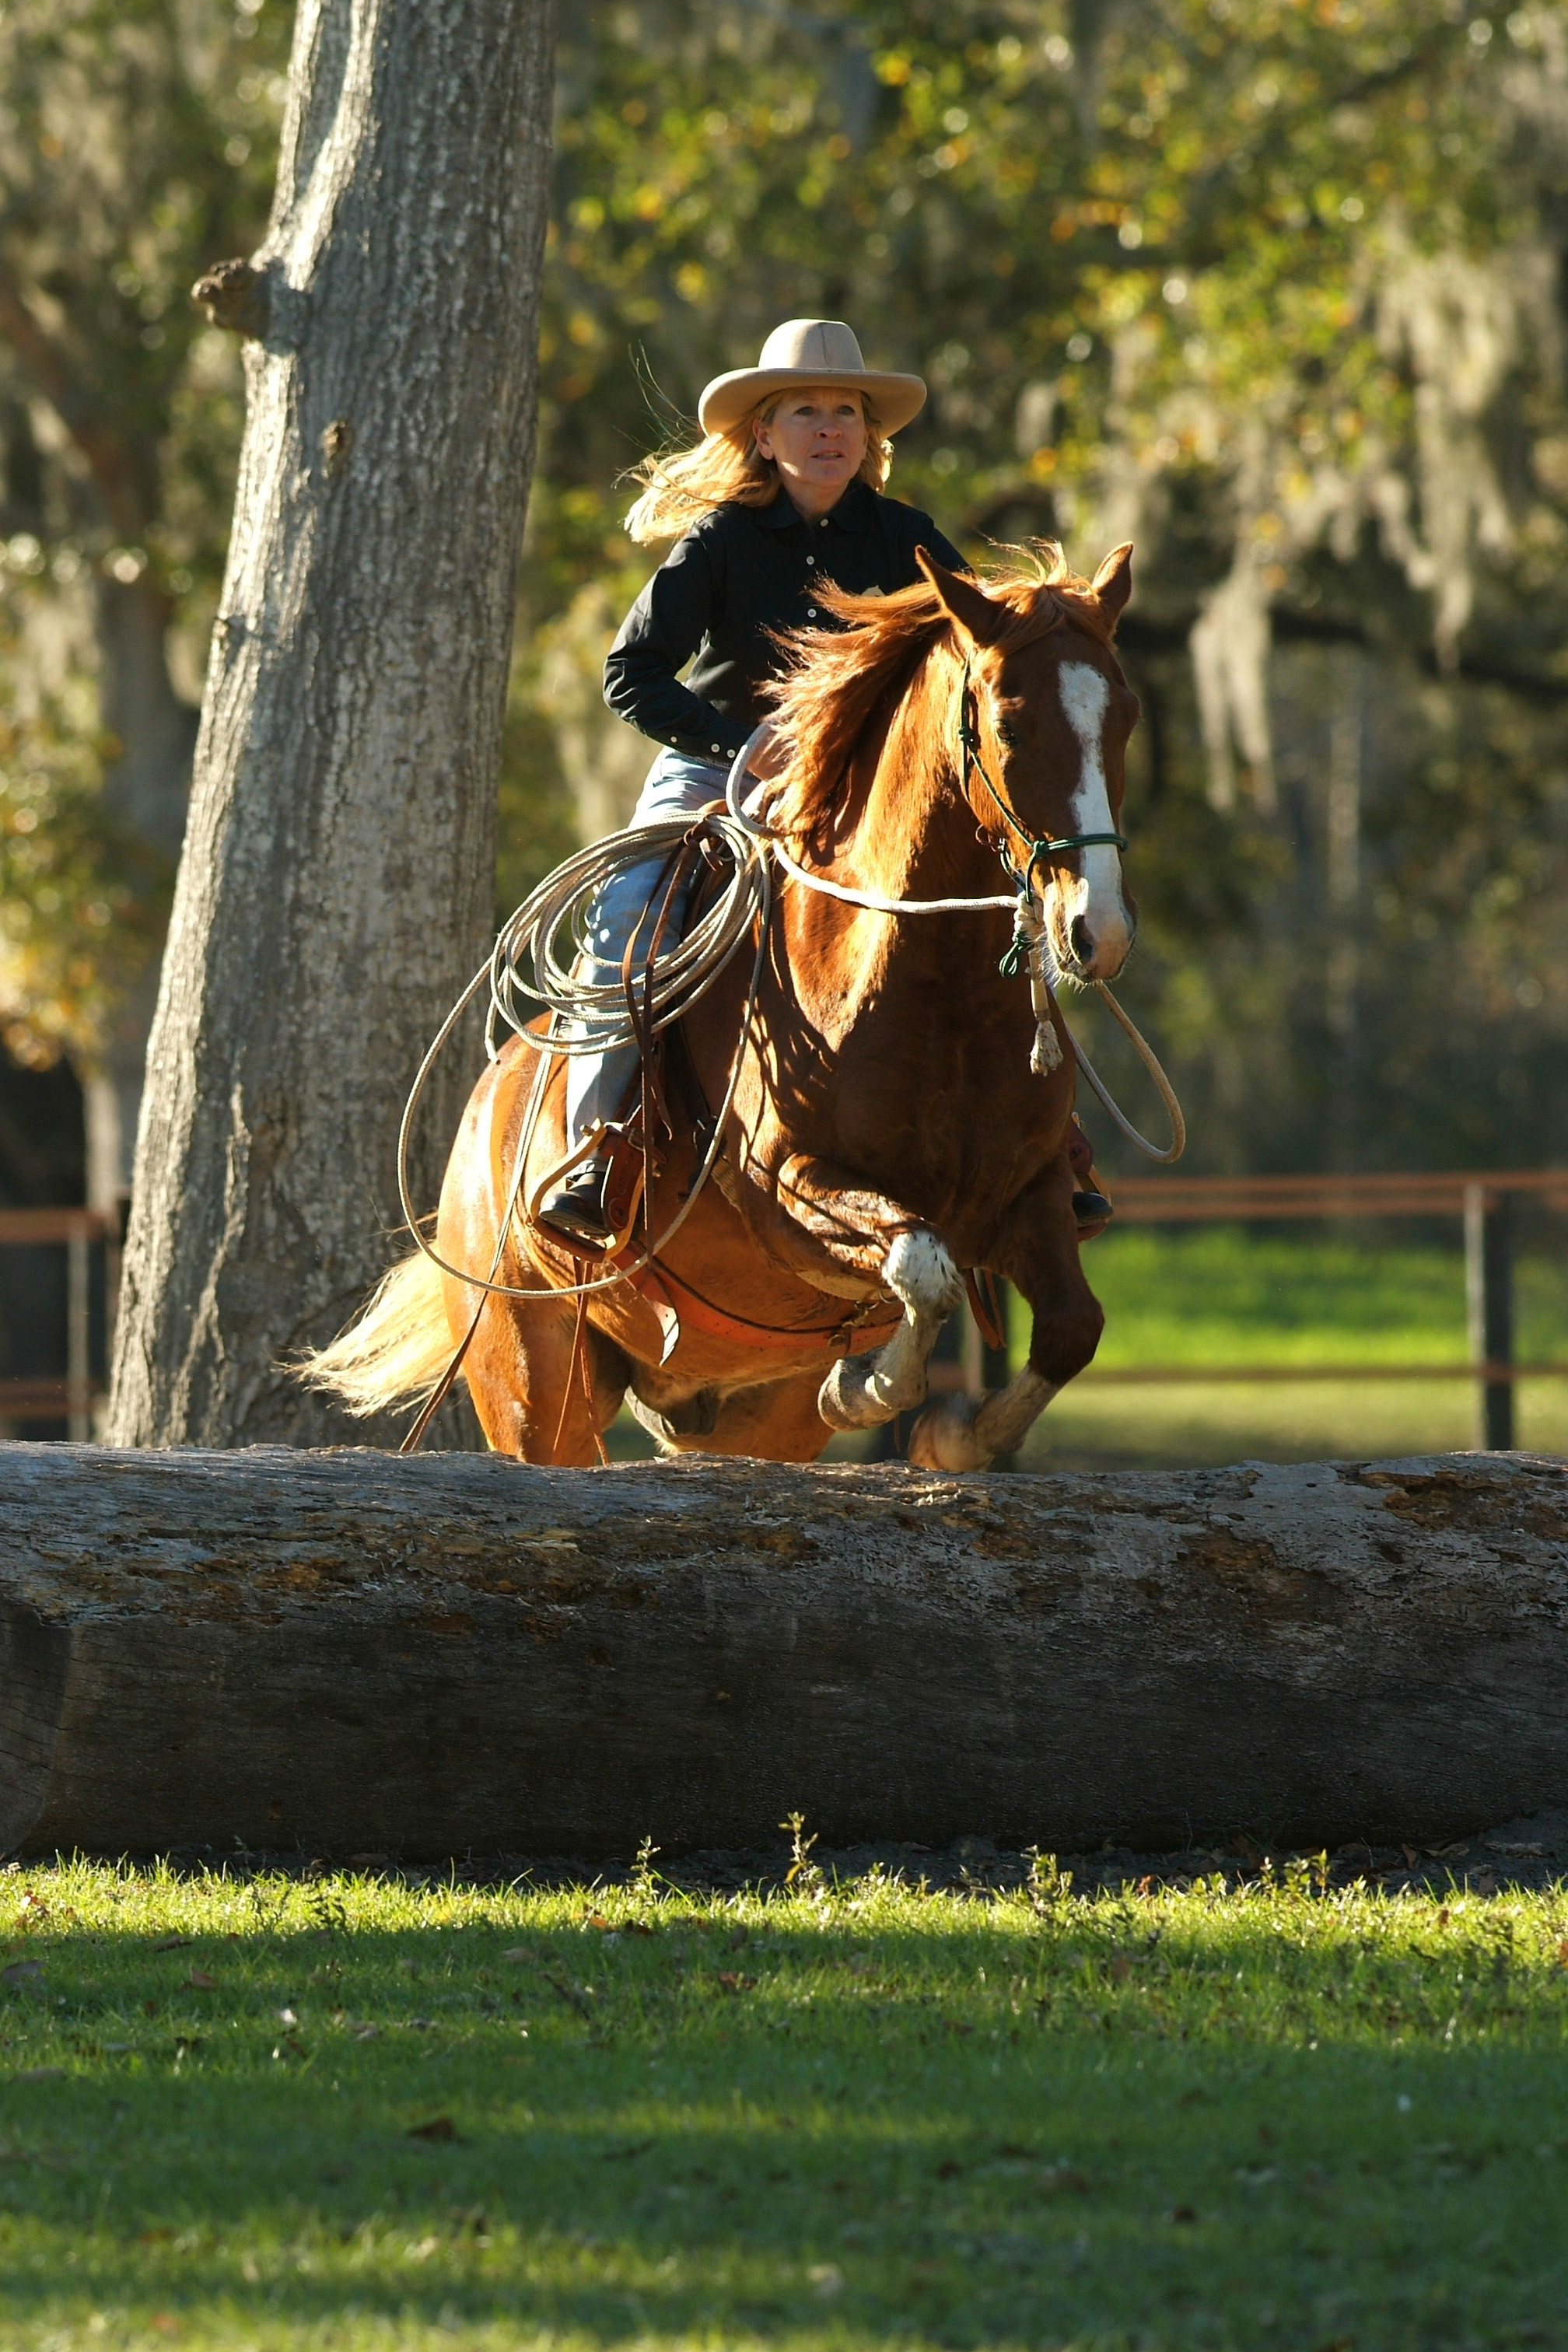 Christi Rains & her NSH Rusty at the Florida ISC - www.christirains.com